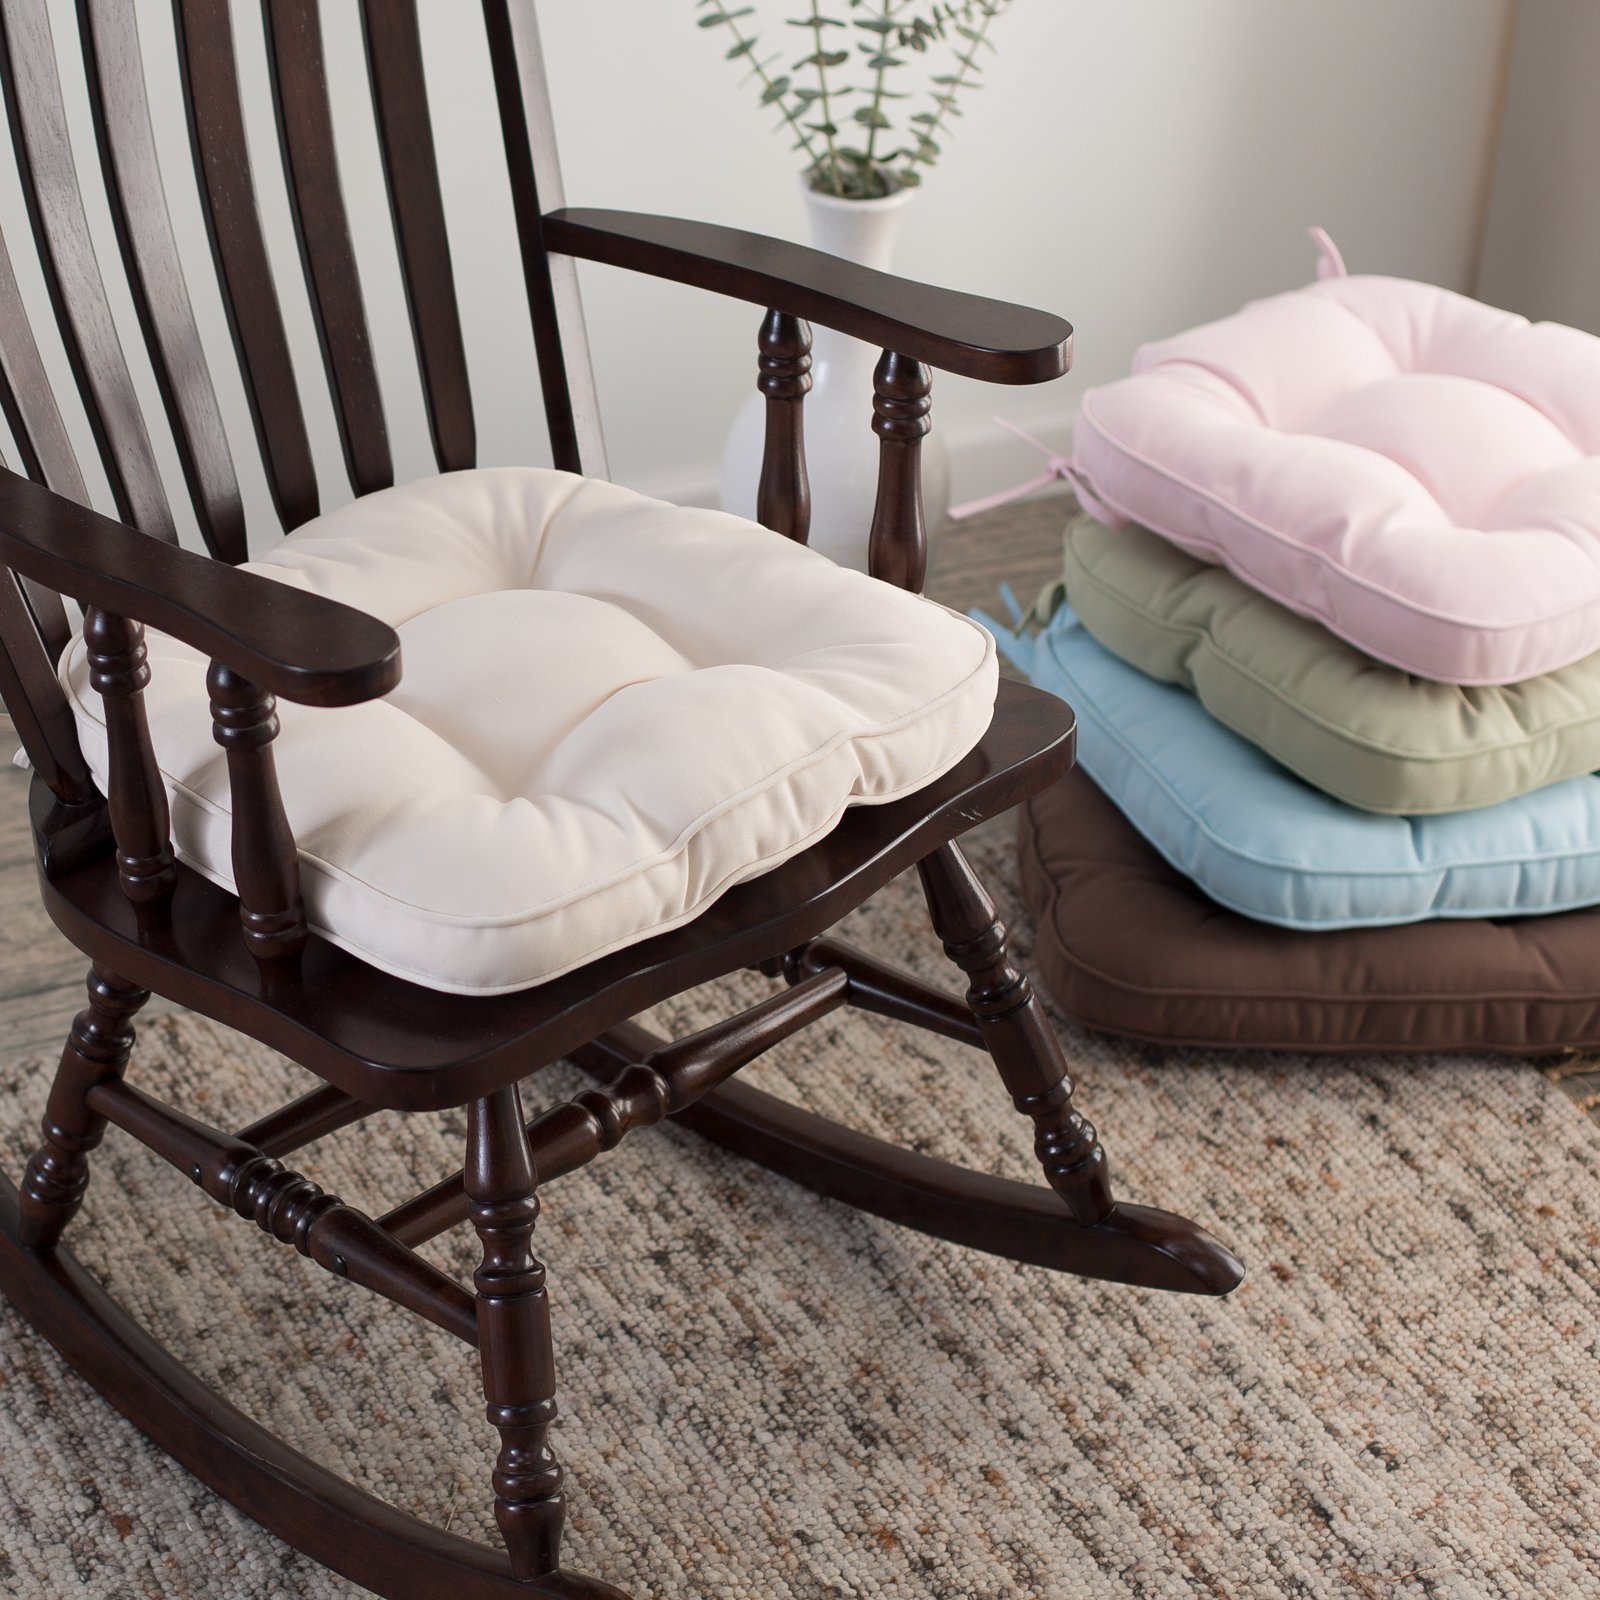 Deauville 18 x 19 Tufted Nursery Rocker Cushion Walmart